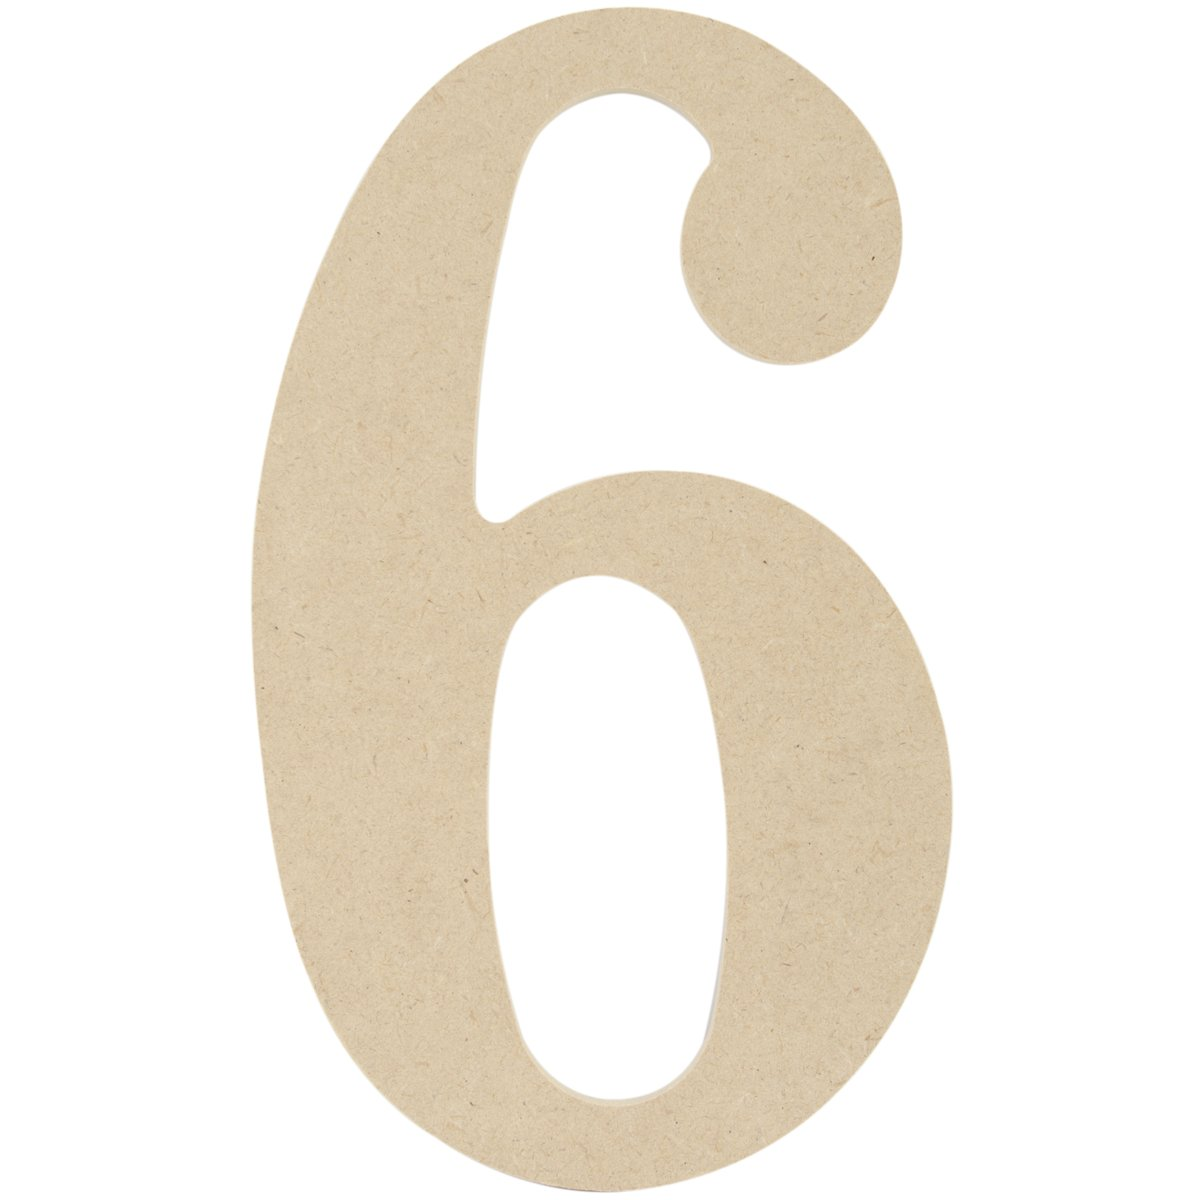 MDF Classic Font Wood Letters & Numbers 9.5-6 Mpi